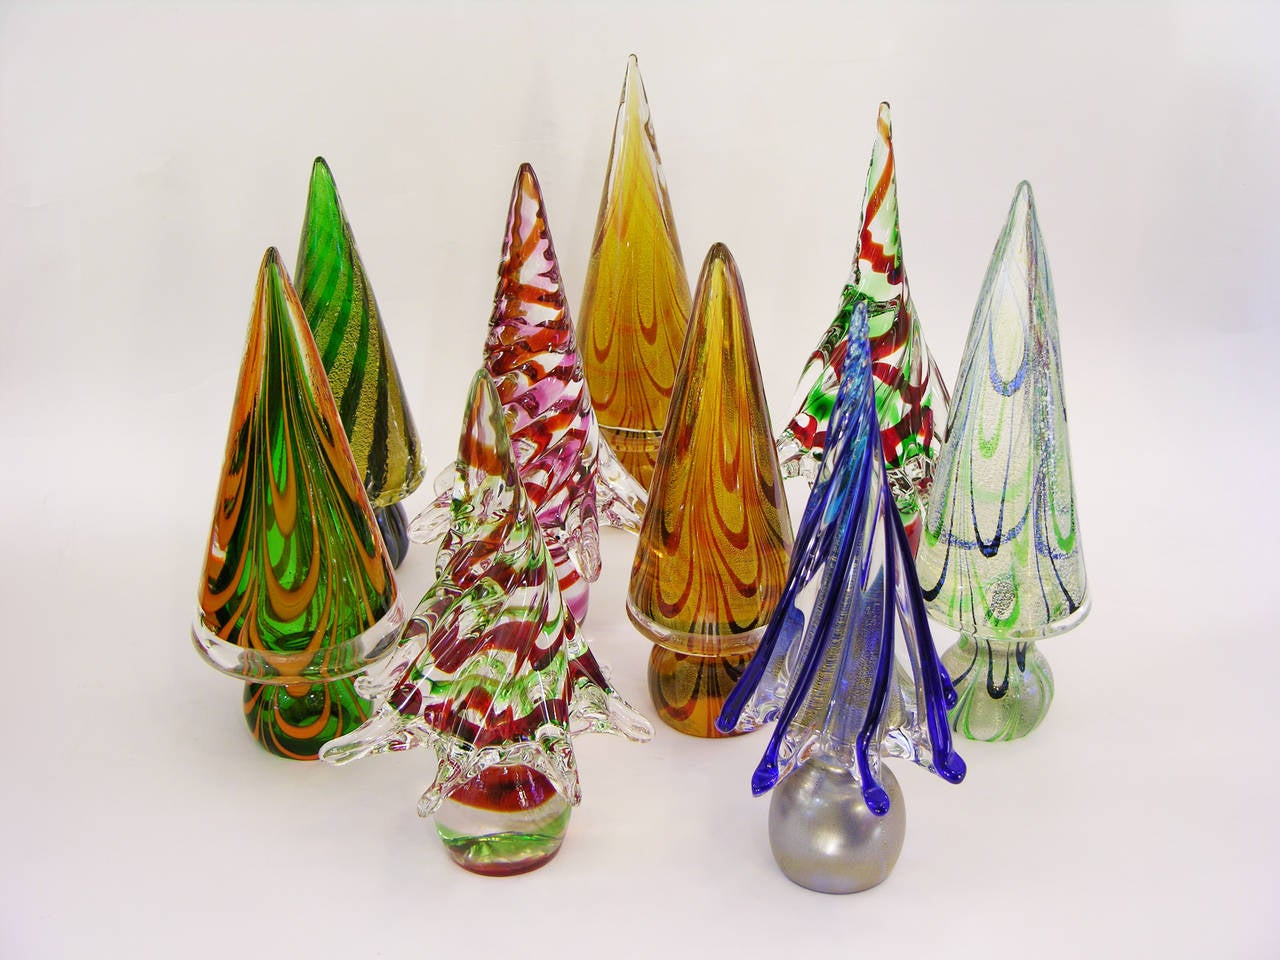 Vintage Italian Murano Glass Christmas Tree Sculptures by Formia at ...